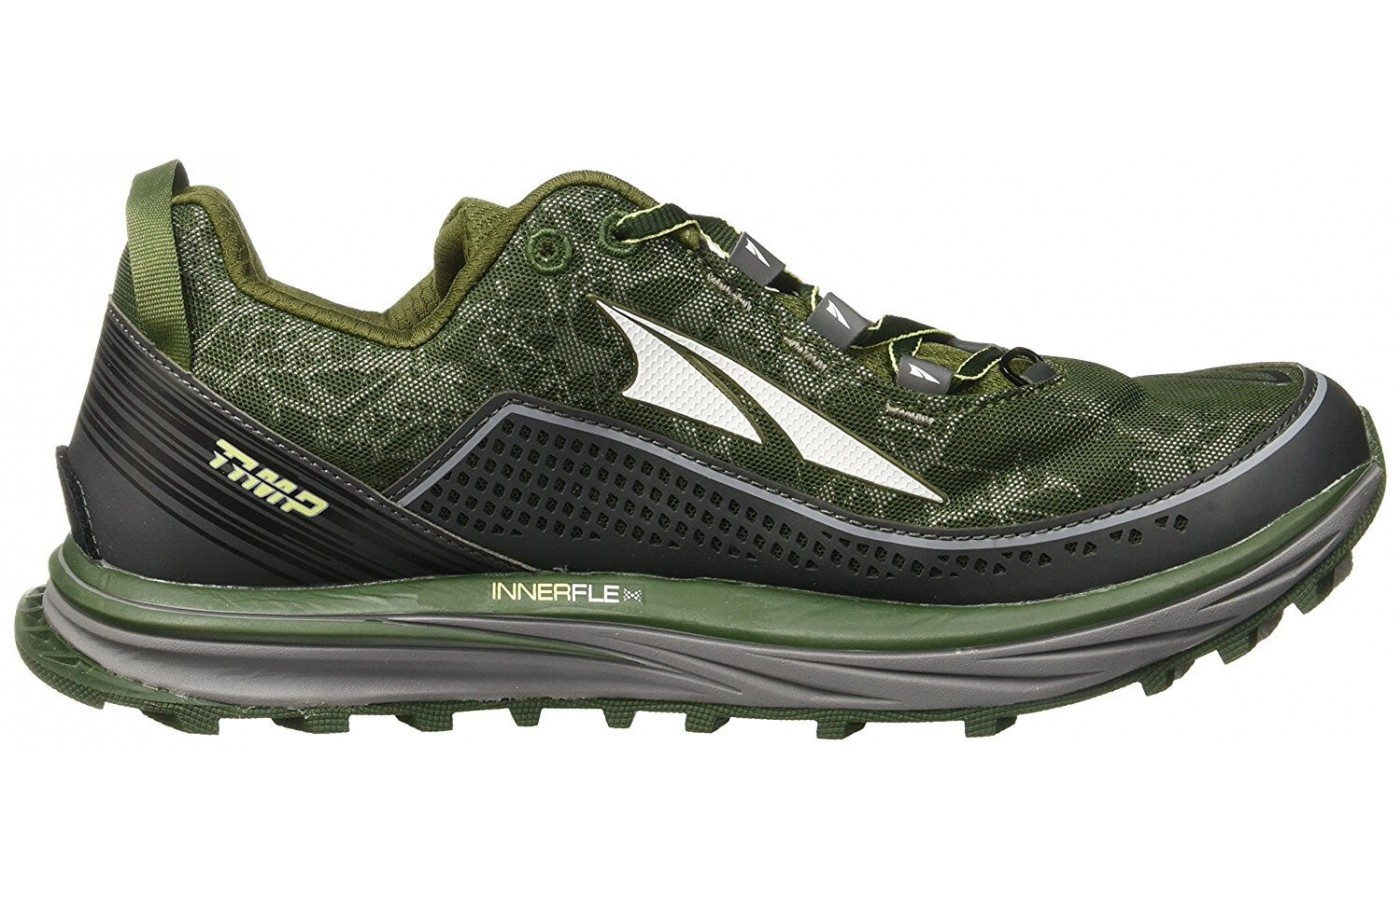 The midsole of this shoe is designed to compress less and last longer.